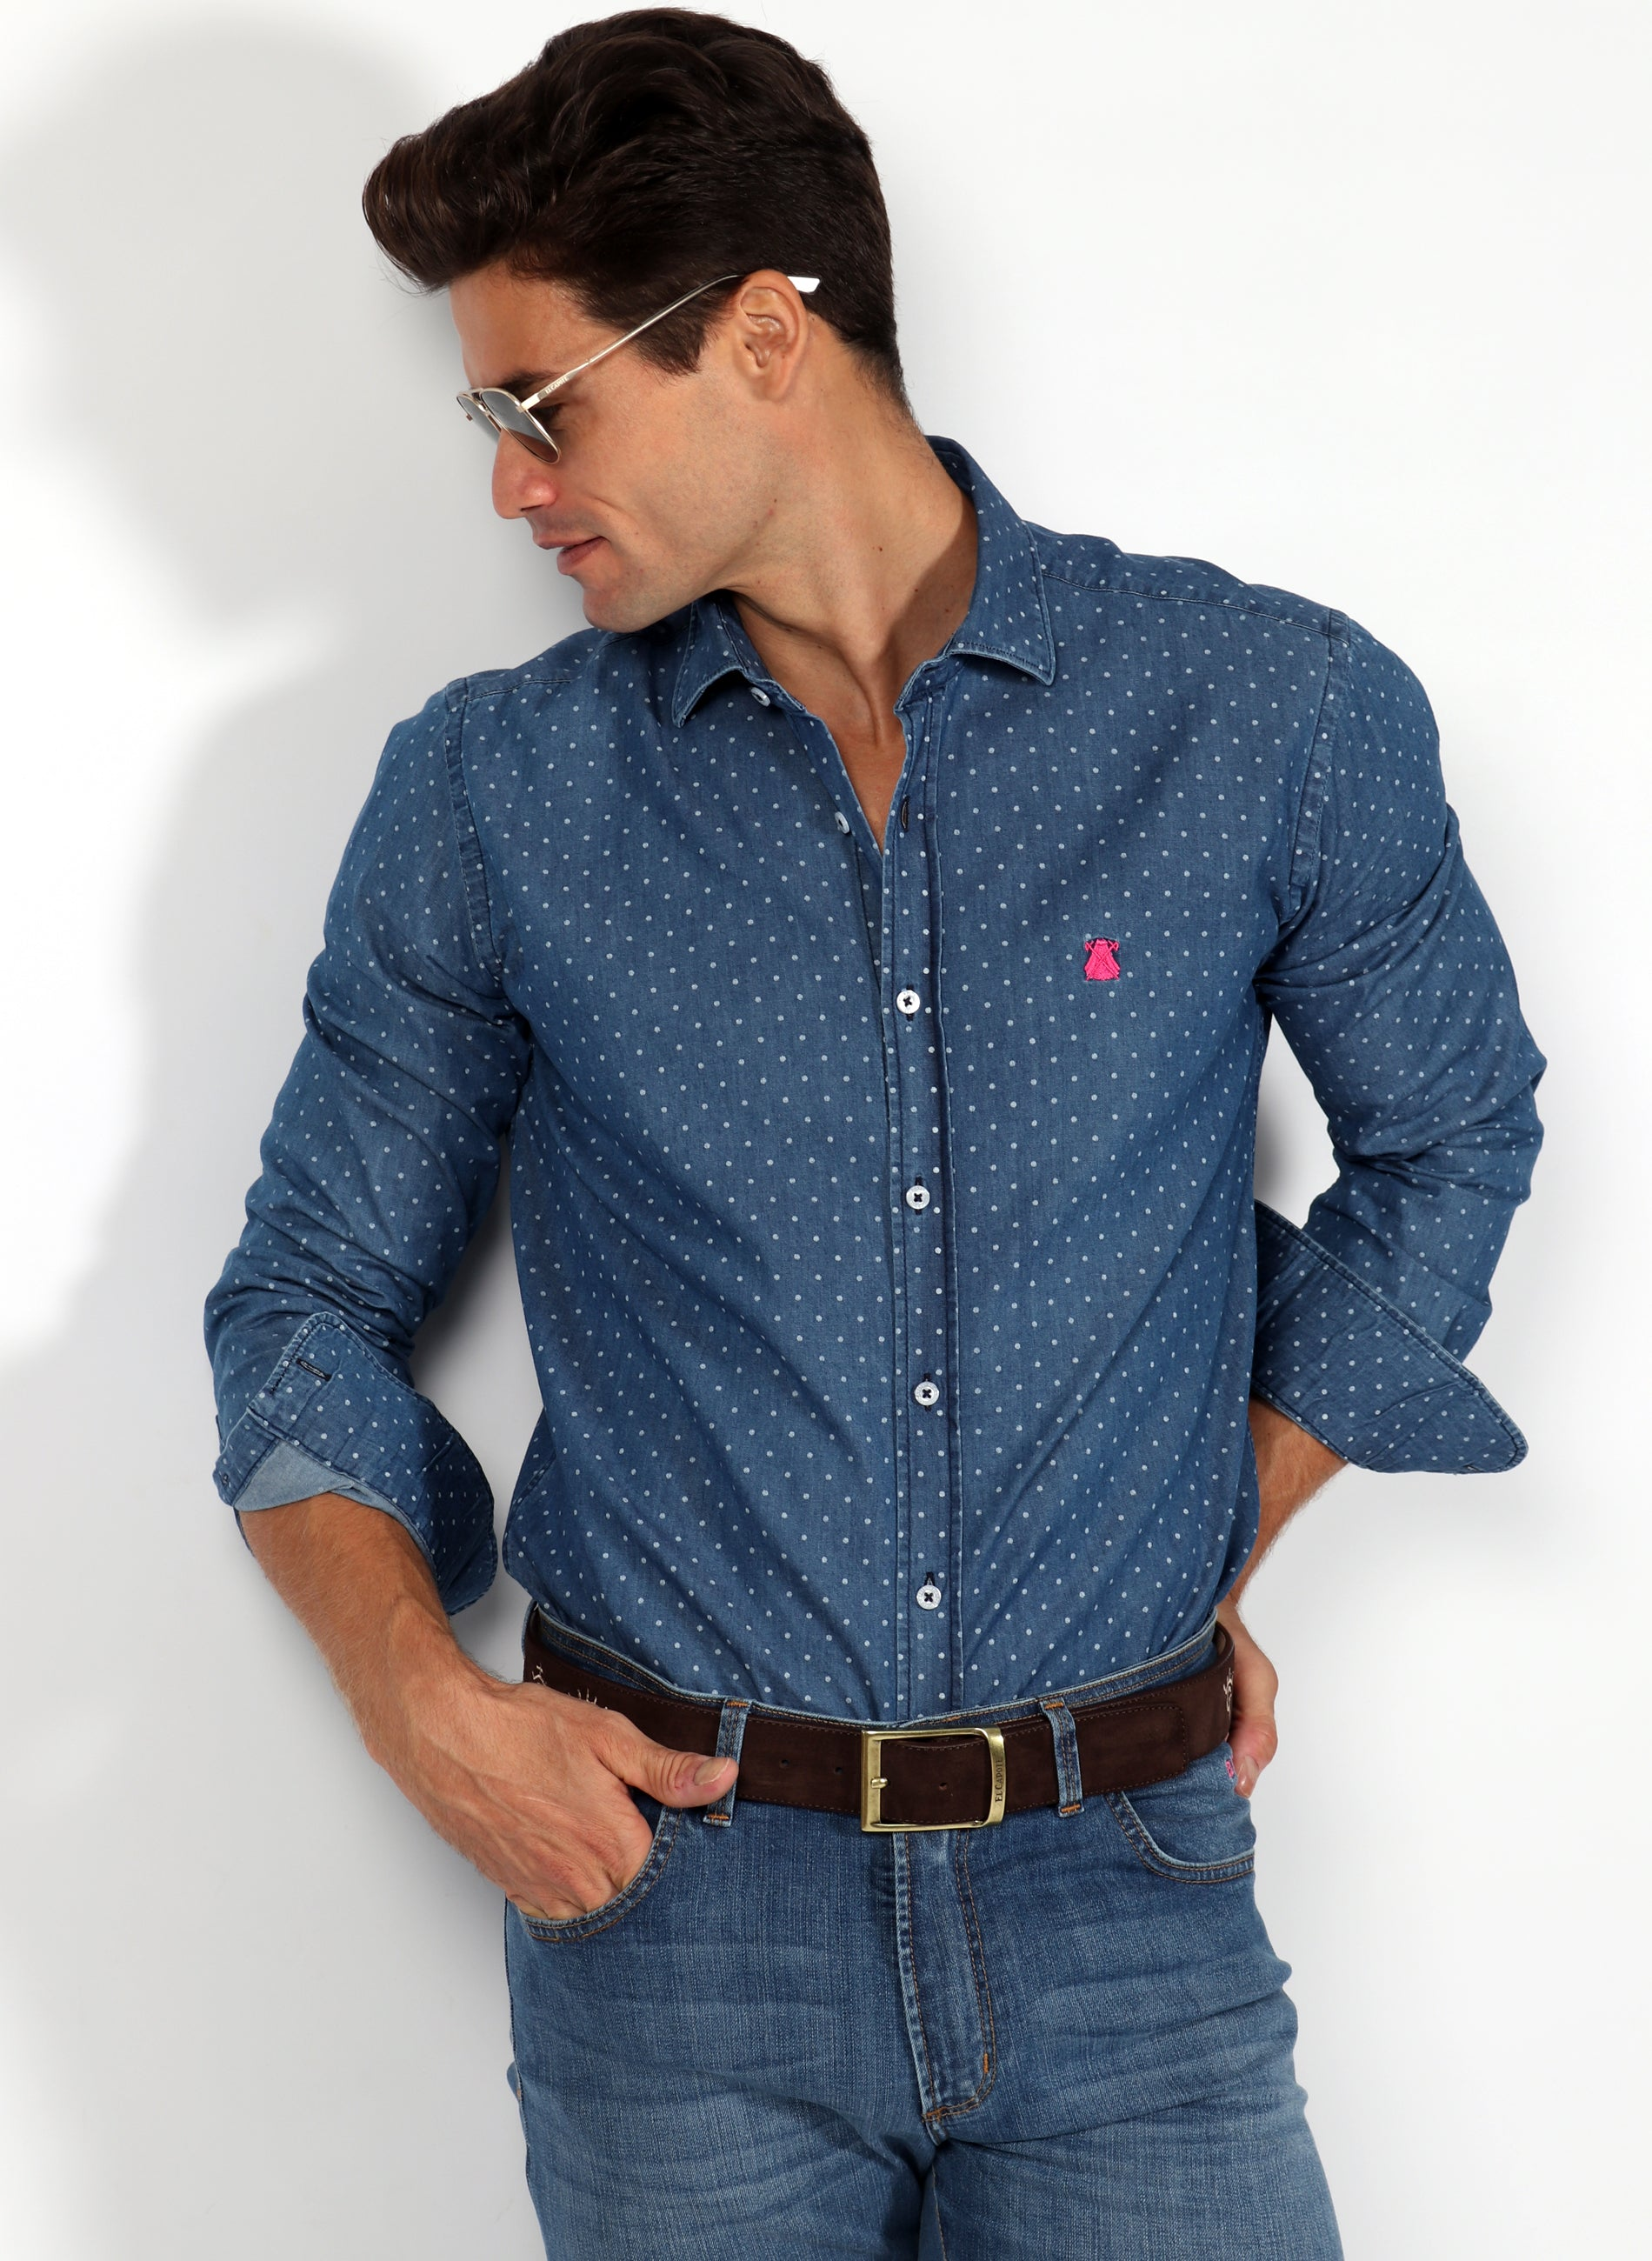 Men's Shirt Denim Polka Dots